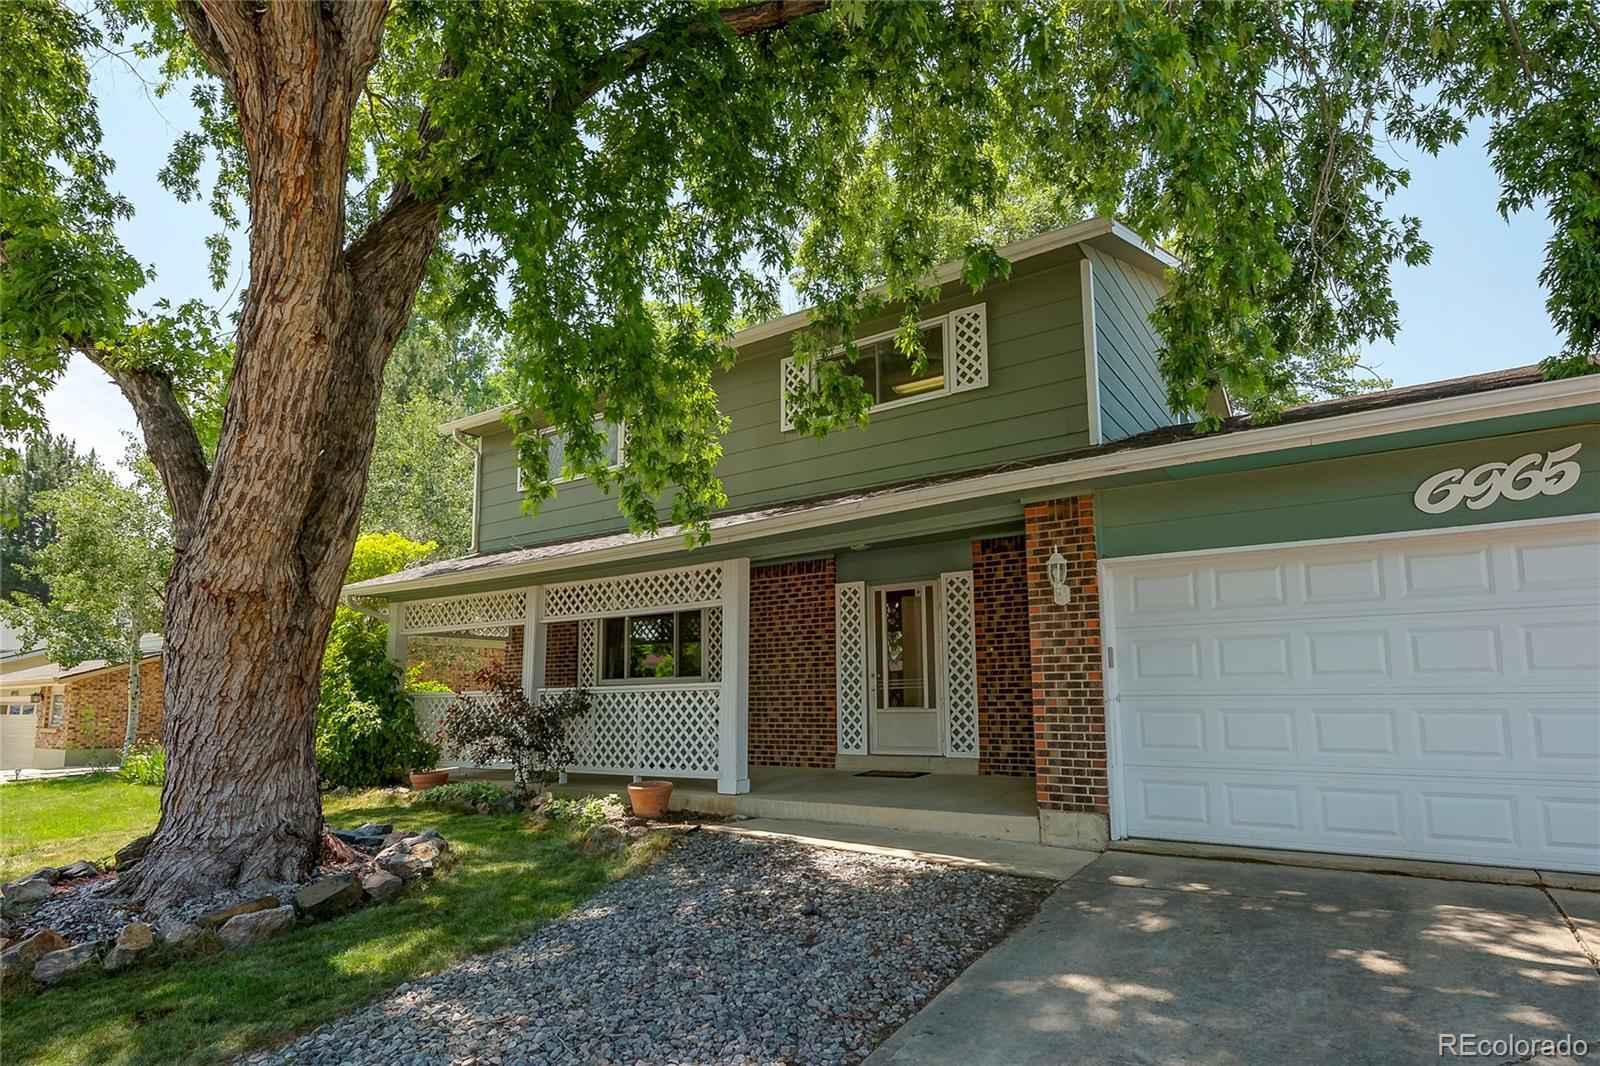 6965 Braun Court, Arvada, CO 80004 - #: 7222908